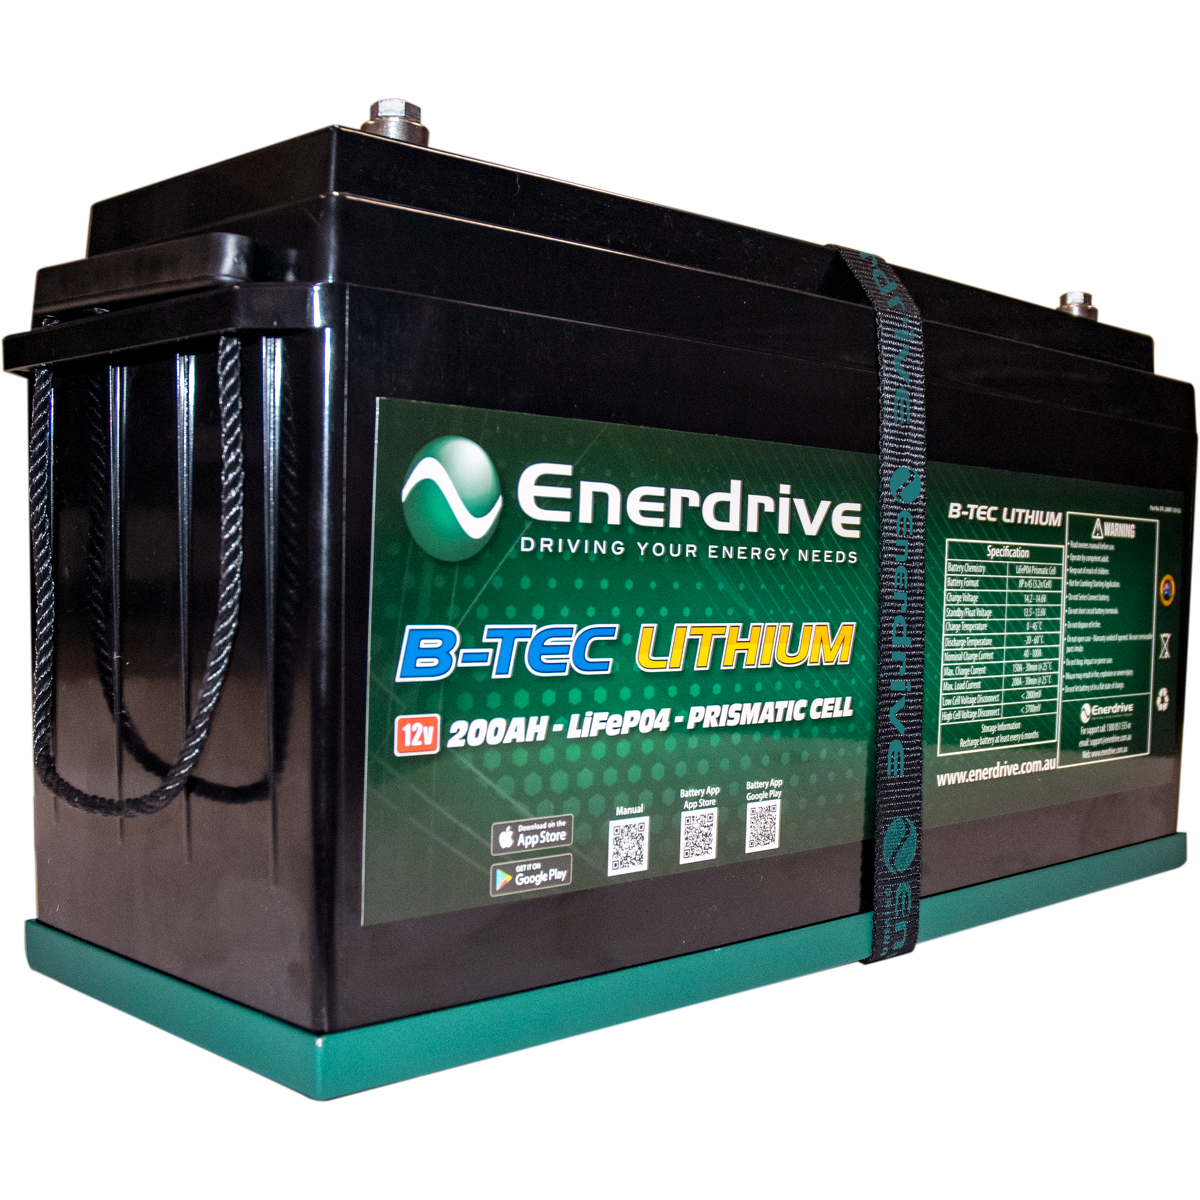 Lithium Battery Overview